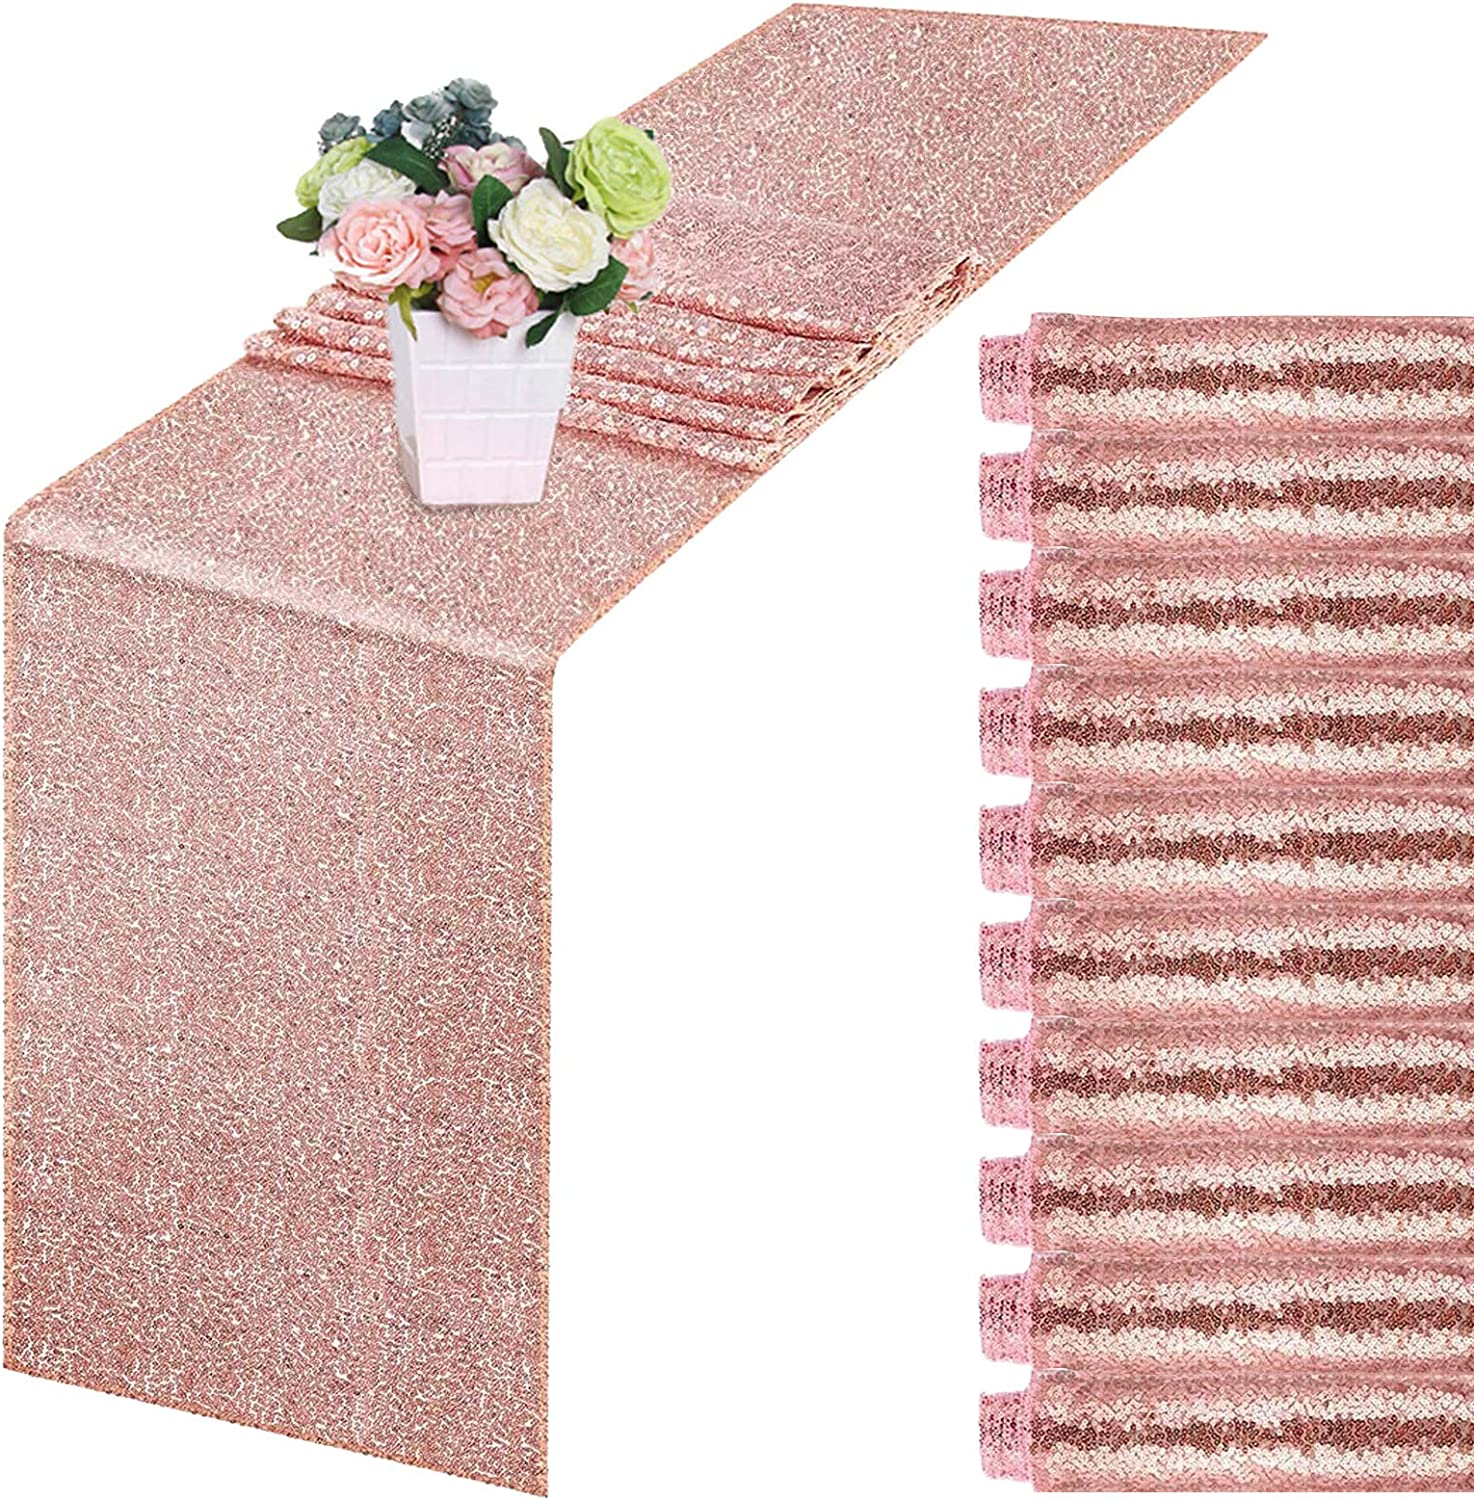 10 Pack Sequin Table Phoenix Mall New Shipping Free Runner Rose Gold- Glitter Ros 108 X 12 Inch